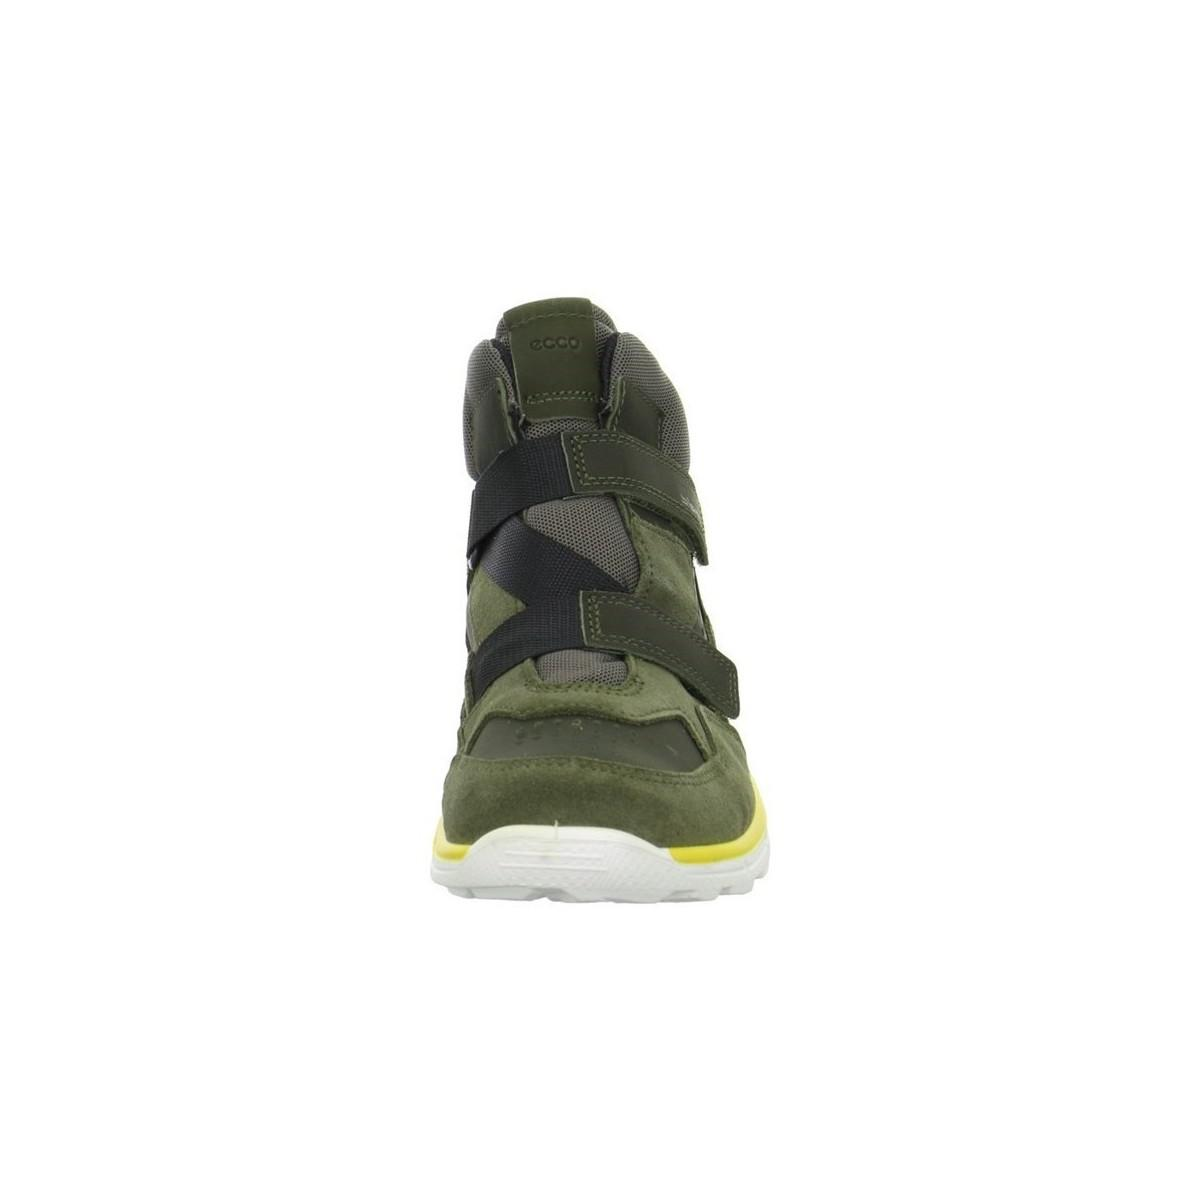 Ecco Biom Trail Kinder Women's Shoes (high-top Trainers) In Green